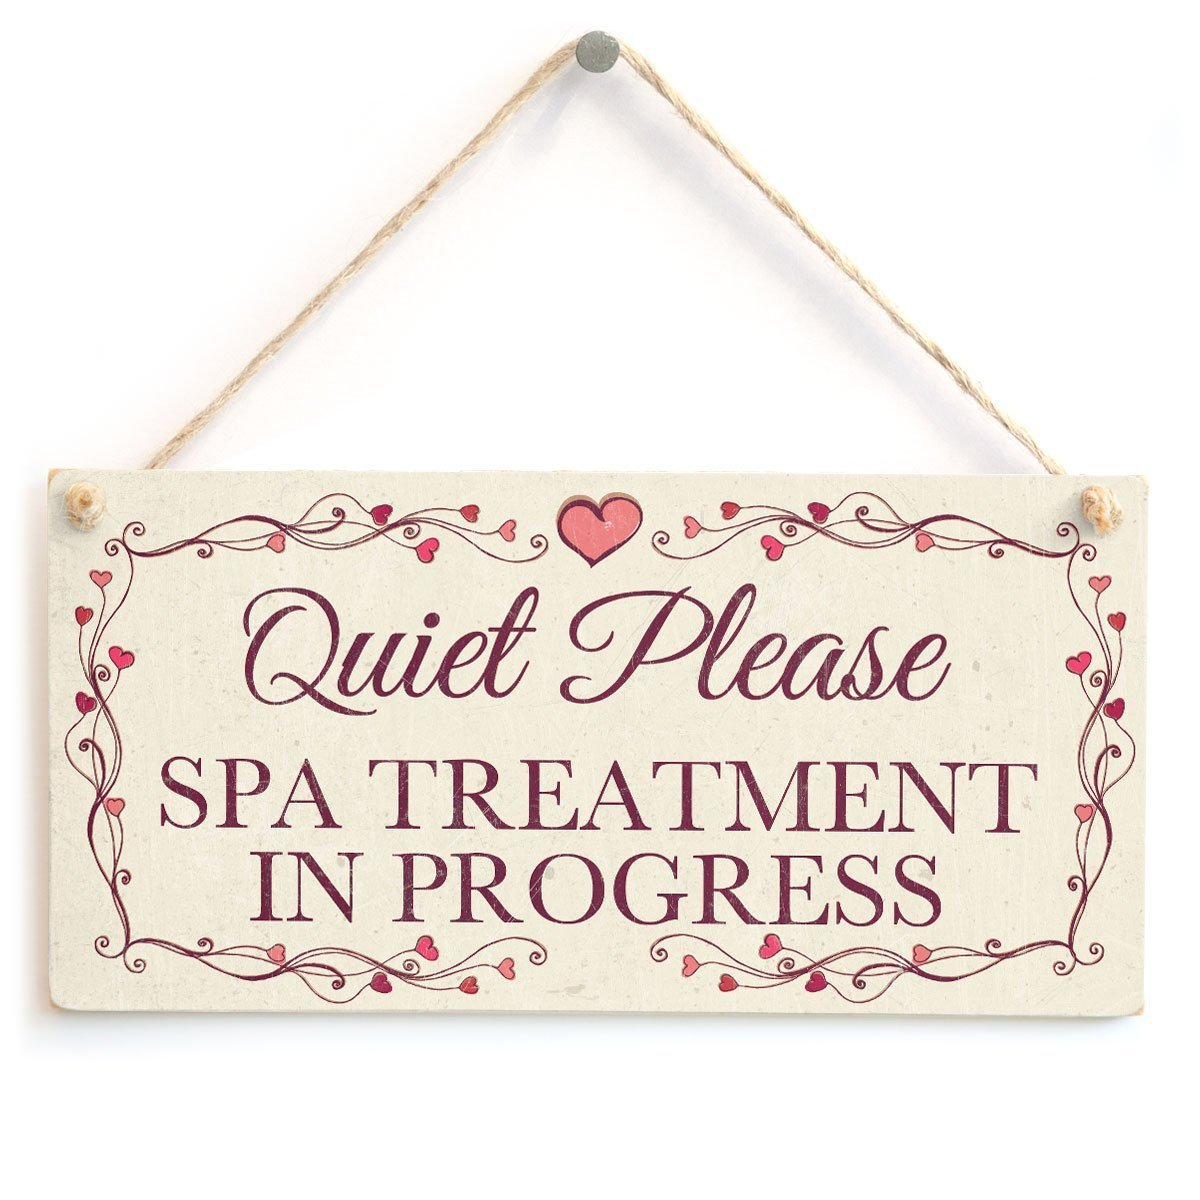 Meijiafei Quiet Please Spa Treatment In Progress - Pretty Love Heart Frame Design Sign/Plaque 10''x5''